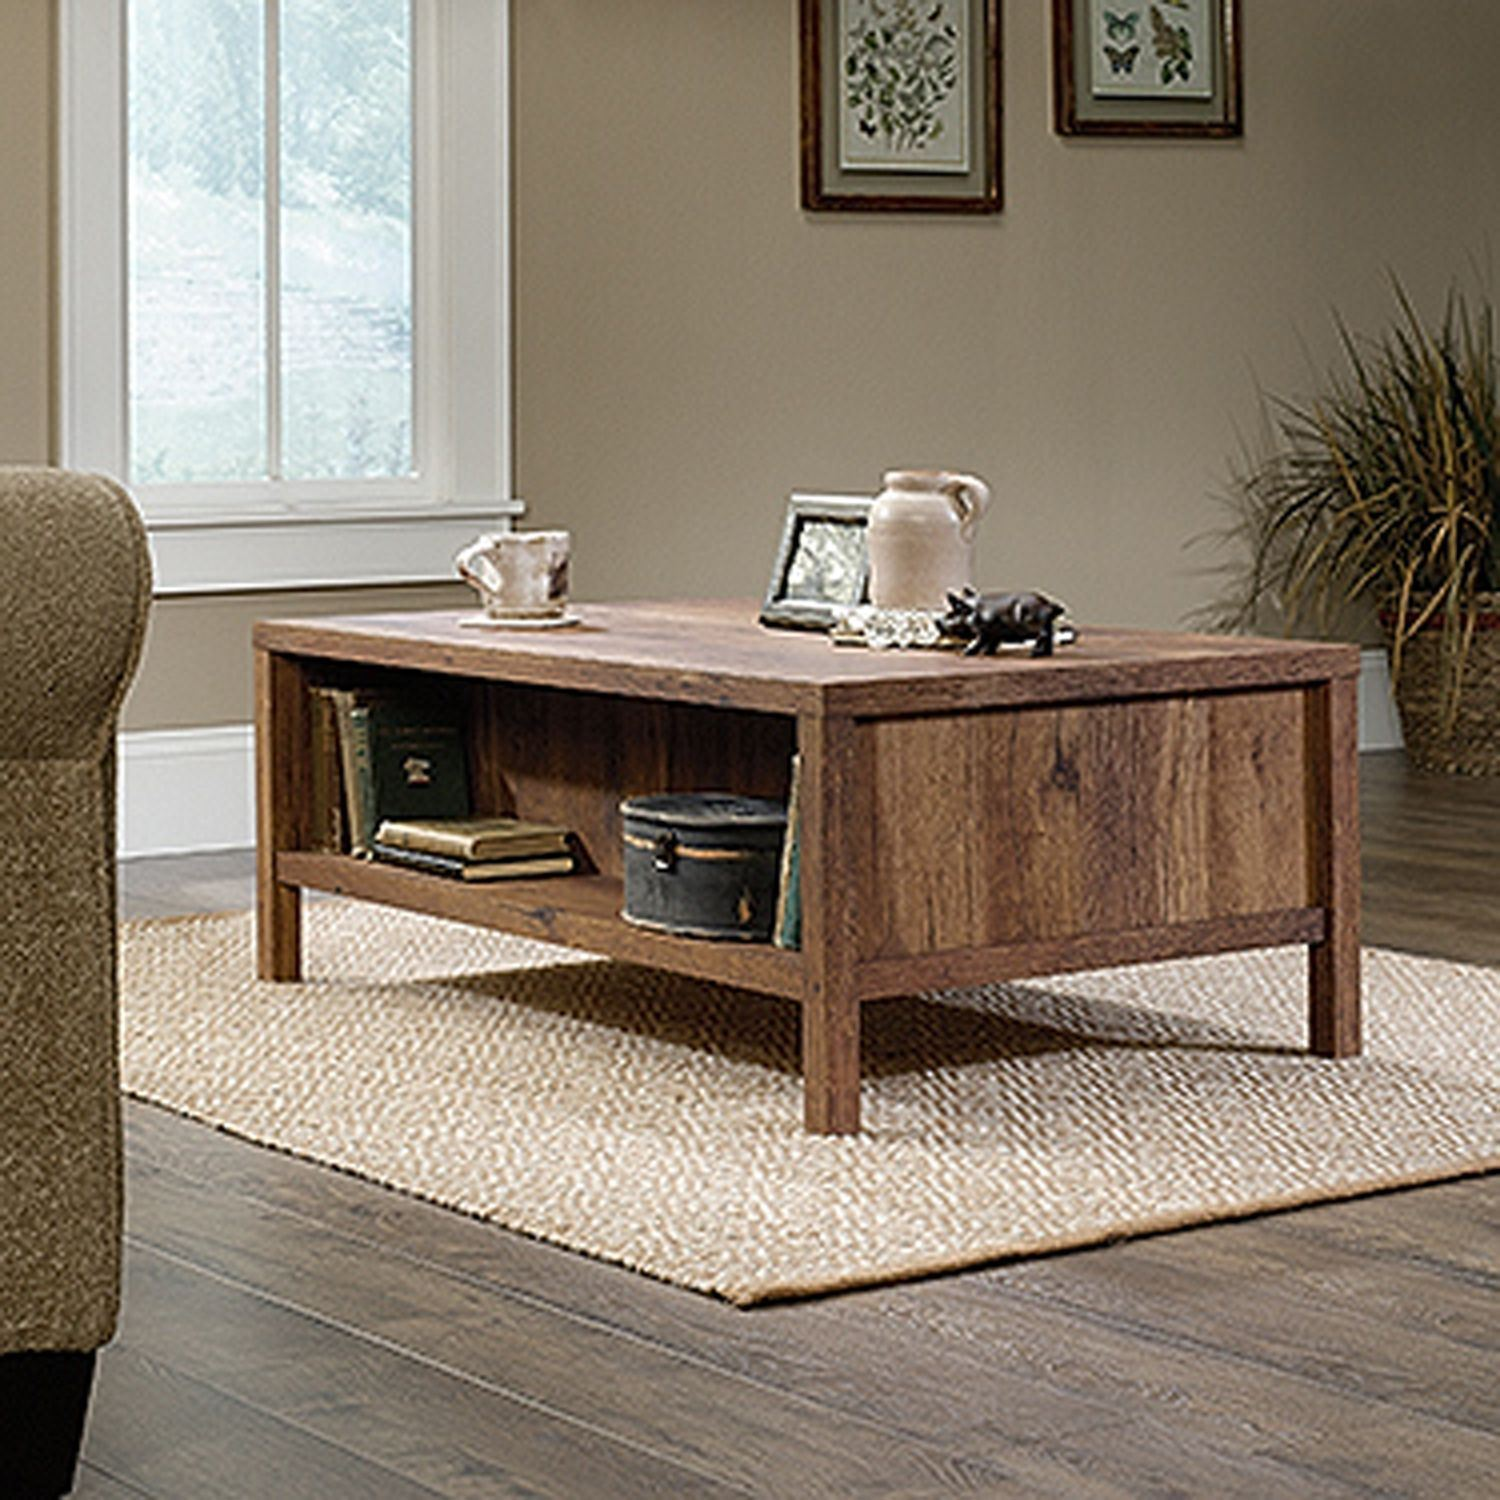 Picture of New Grange Coffee Table Vintage Oak * D